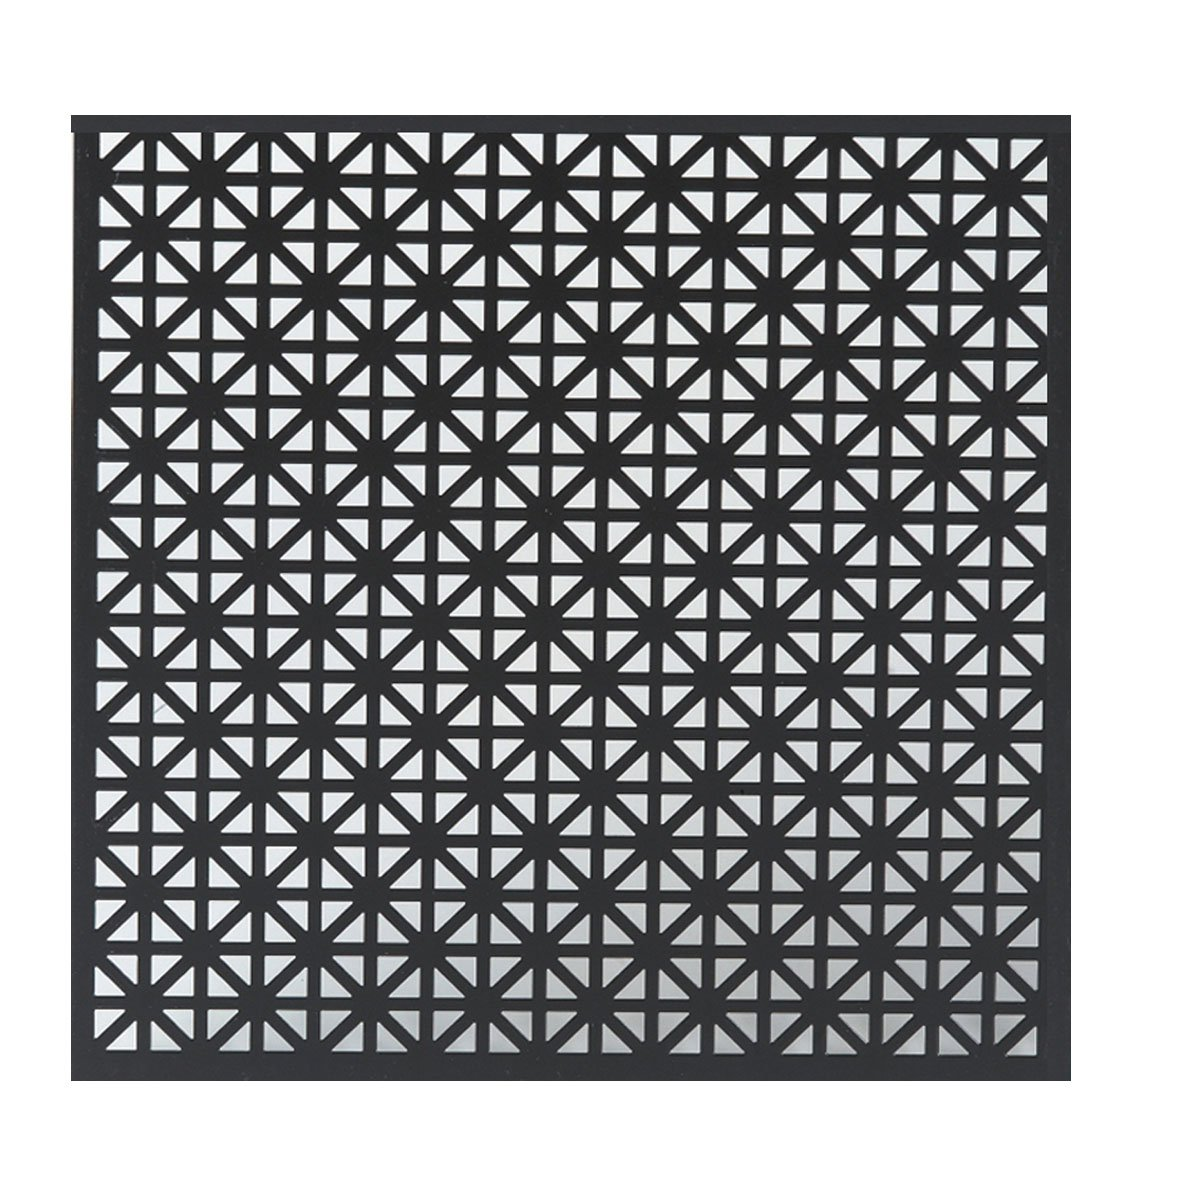 M-D Building Products 56006 .020-Inch Thick 1-Feet by 2-Feet Union Jack Aluminum Sheet, Black